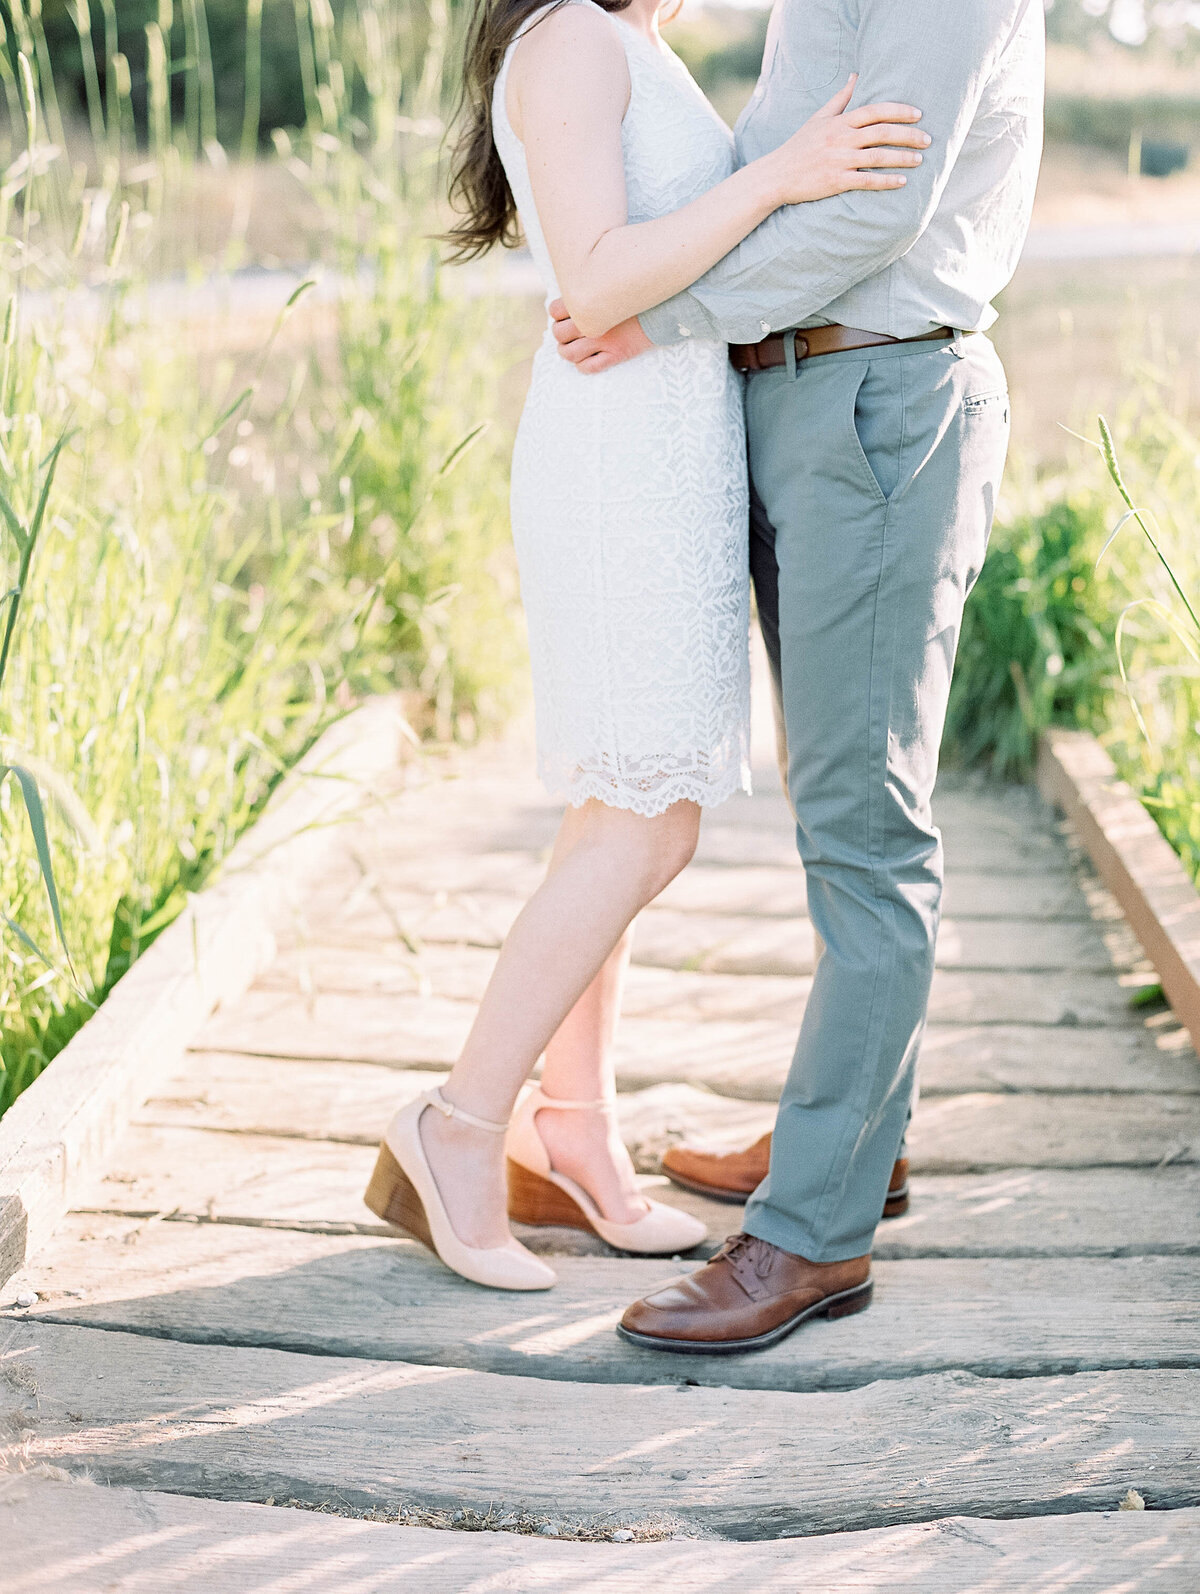 Filoli_Gardens_California_Engagement_Photo-07